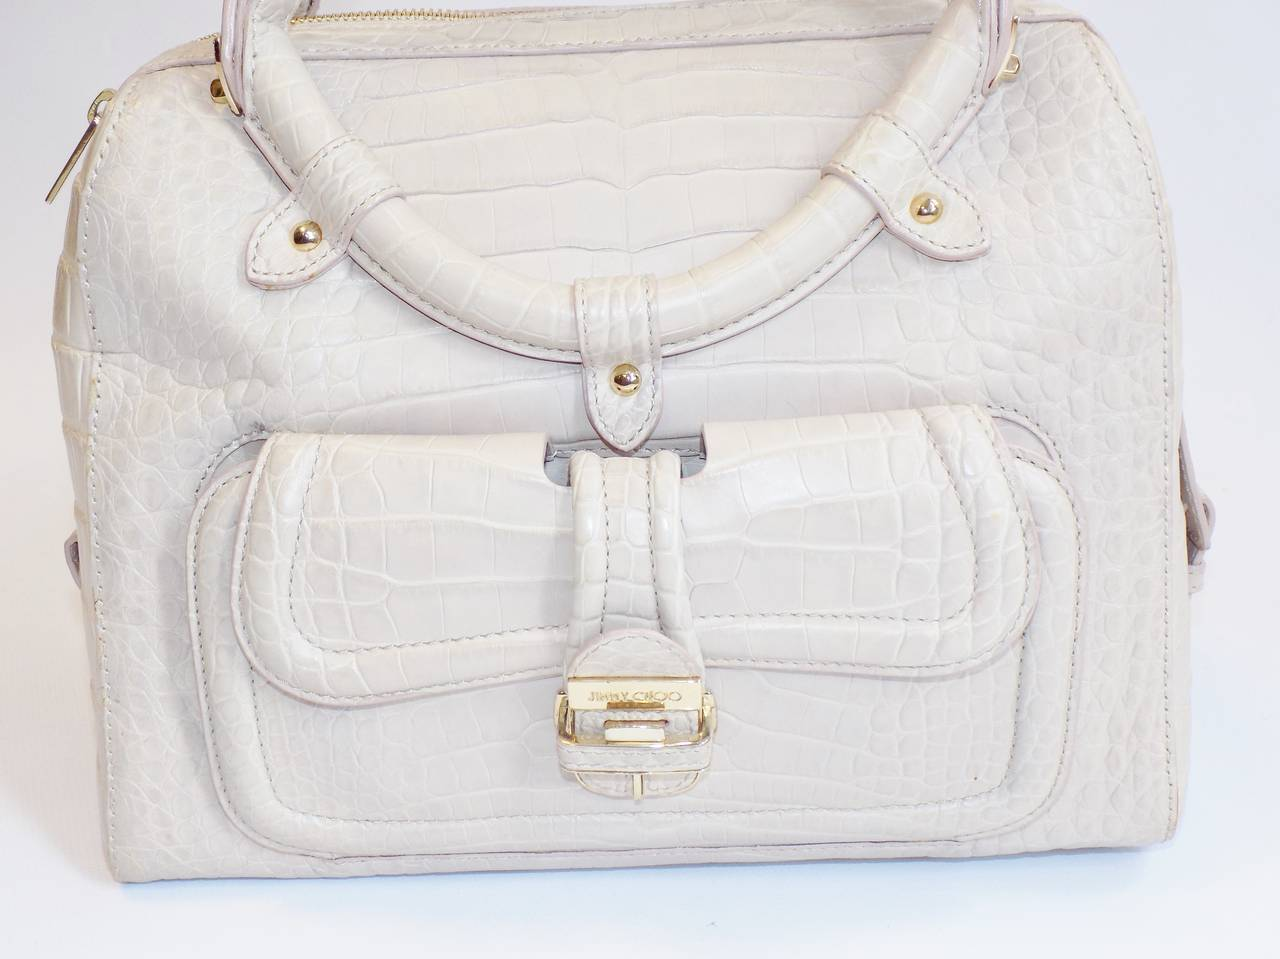 Jimmy Choo Ultimate Alligator Blush color top handle bag -purse  6